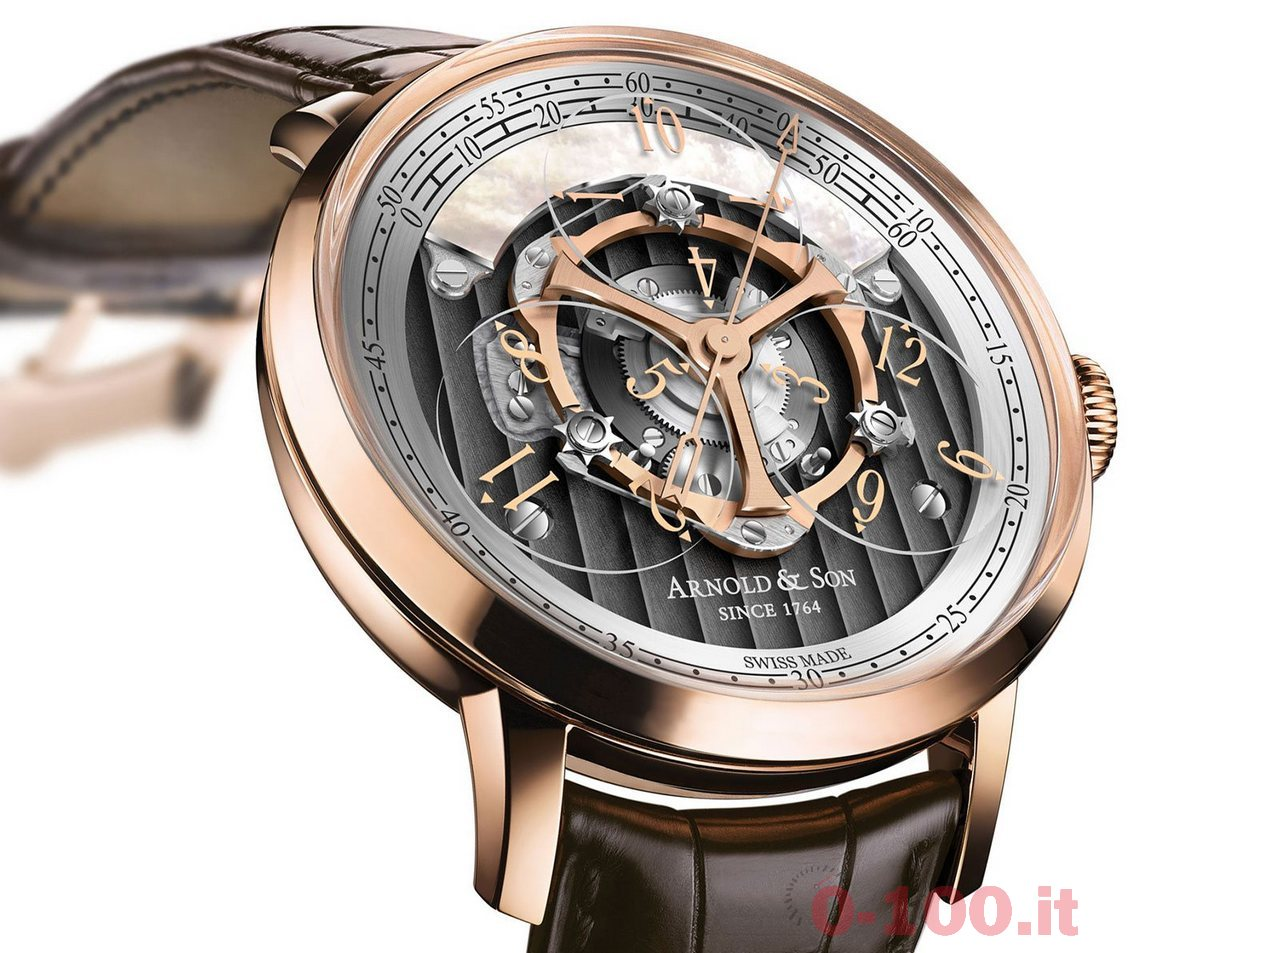 anteprima-baselworld-2015-arnold-son-golden-wheel-limited-edition-ref-1hvar-m01a-c120a-prezzo-price_0-100_2